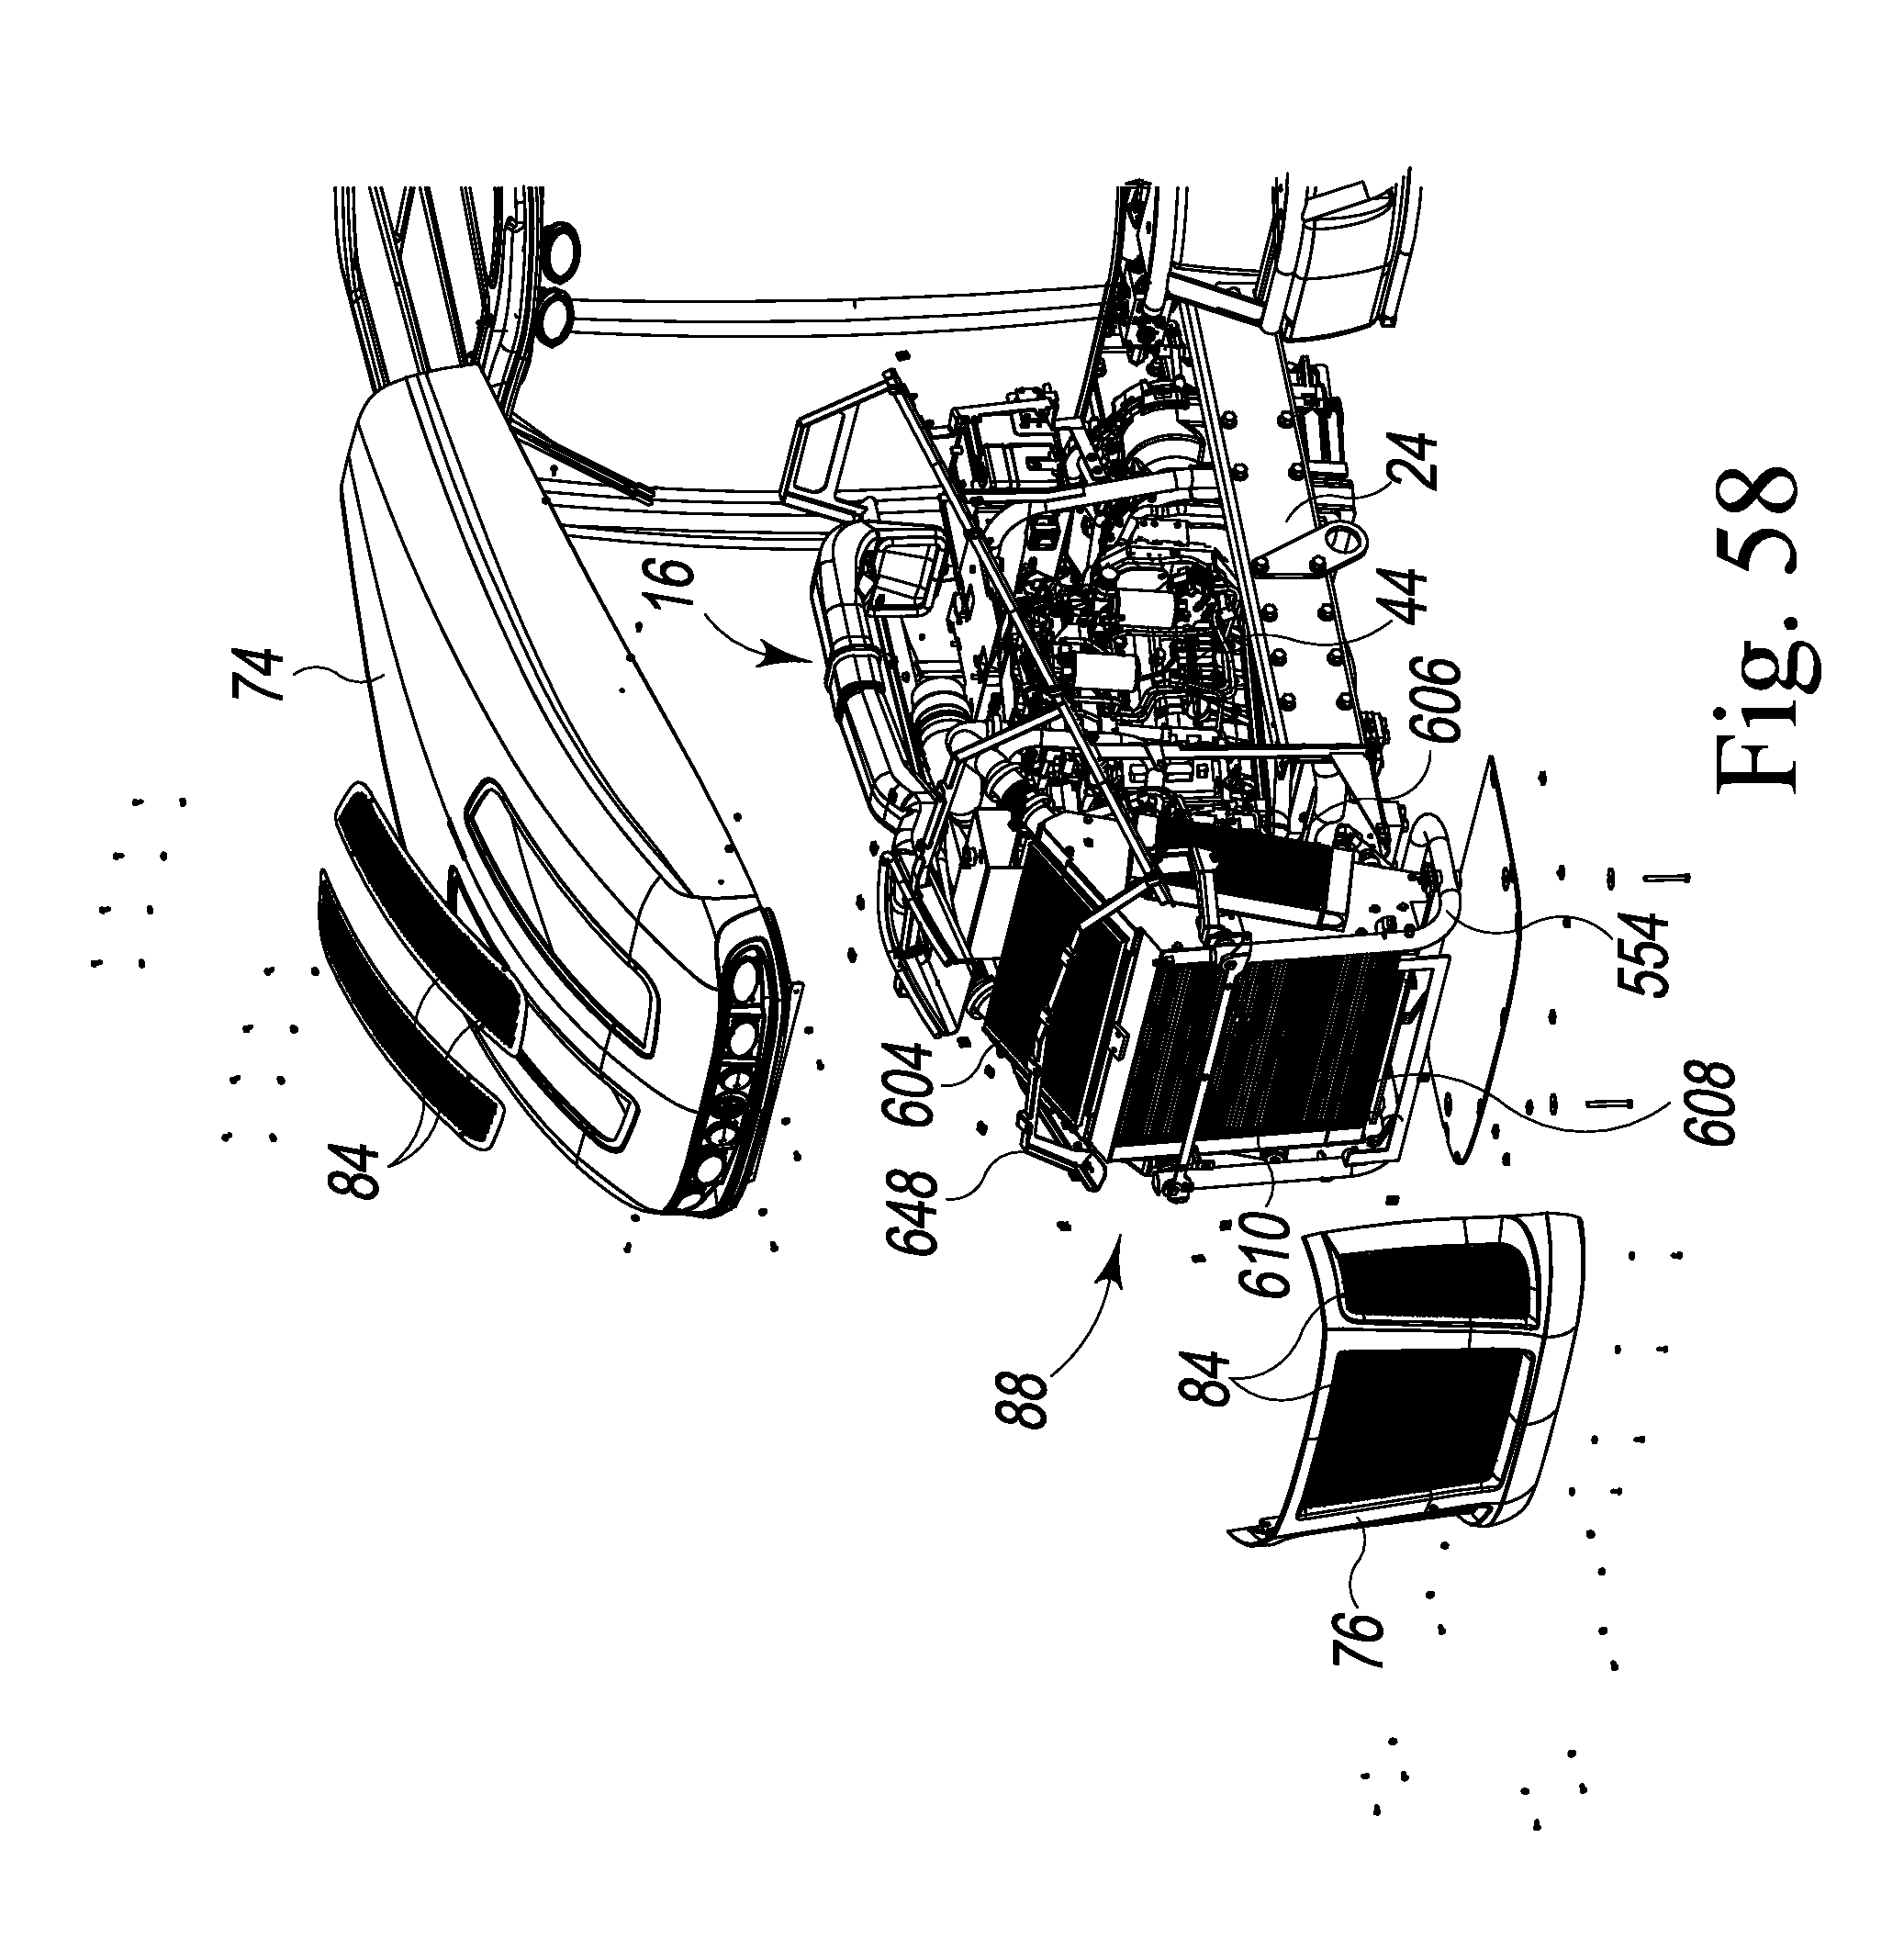 Us8490730b2 cooling system assembly for a crop sprayer patents